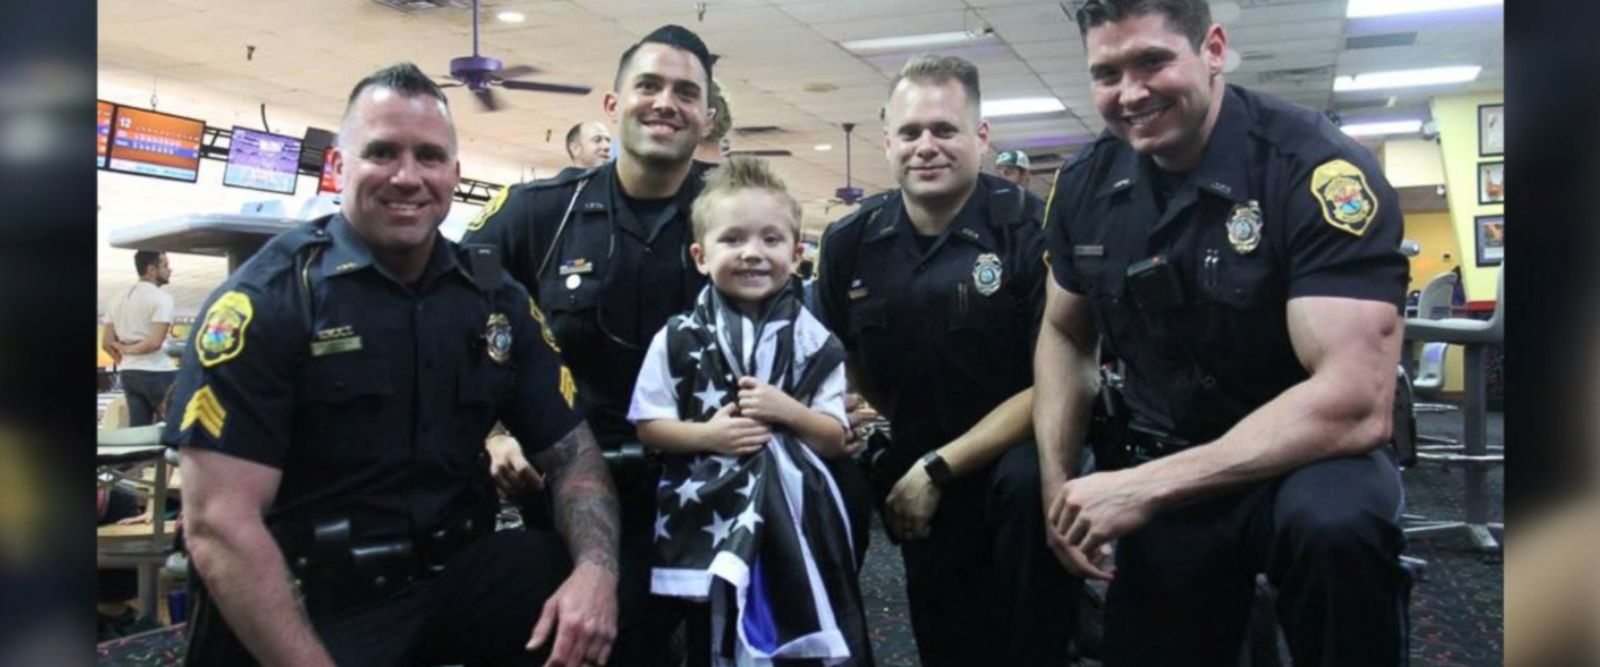 Brody Barnaky, 4, was surprised by four uniformed officers of the Clearwater Police Department at his Jan. 22 police-themed birthday party in Florida.